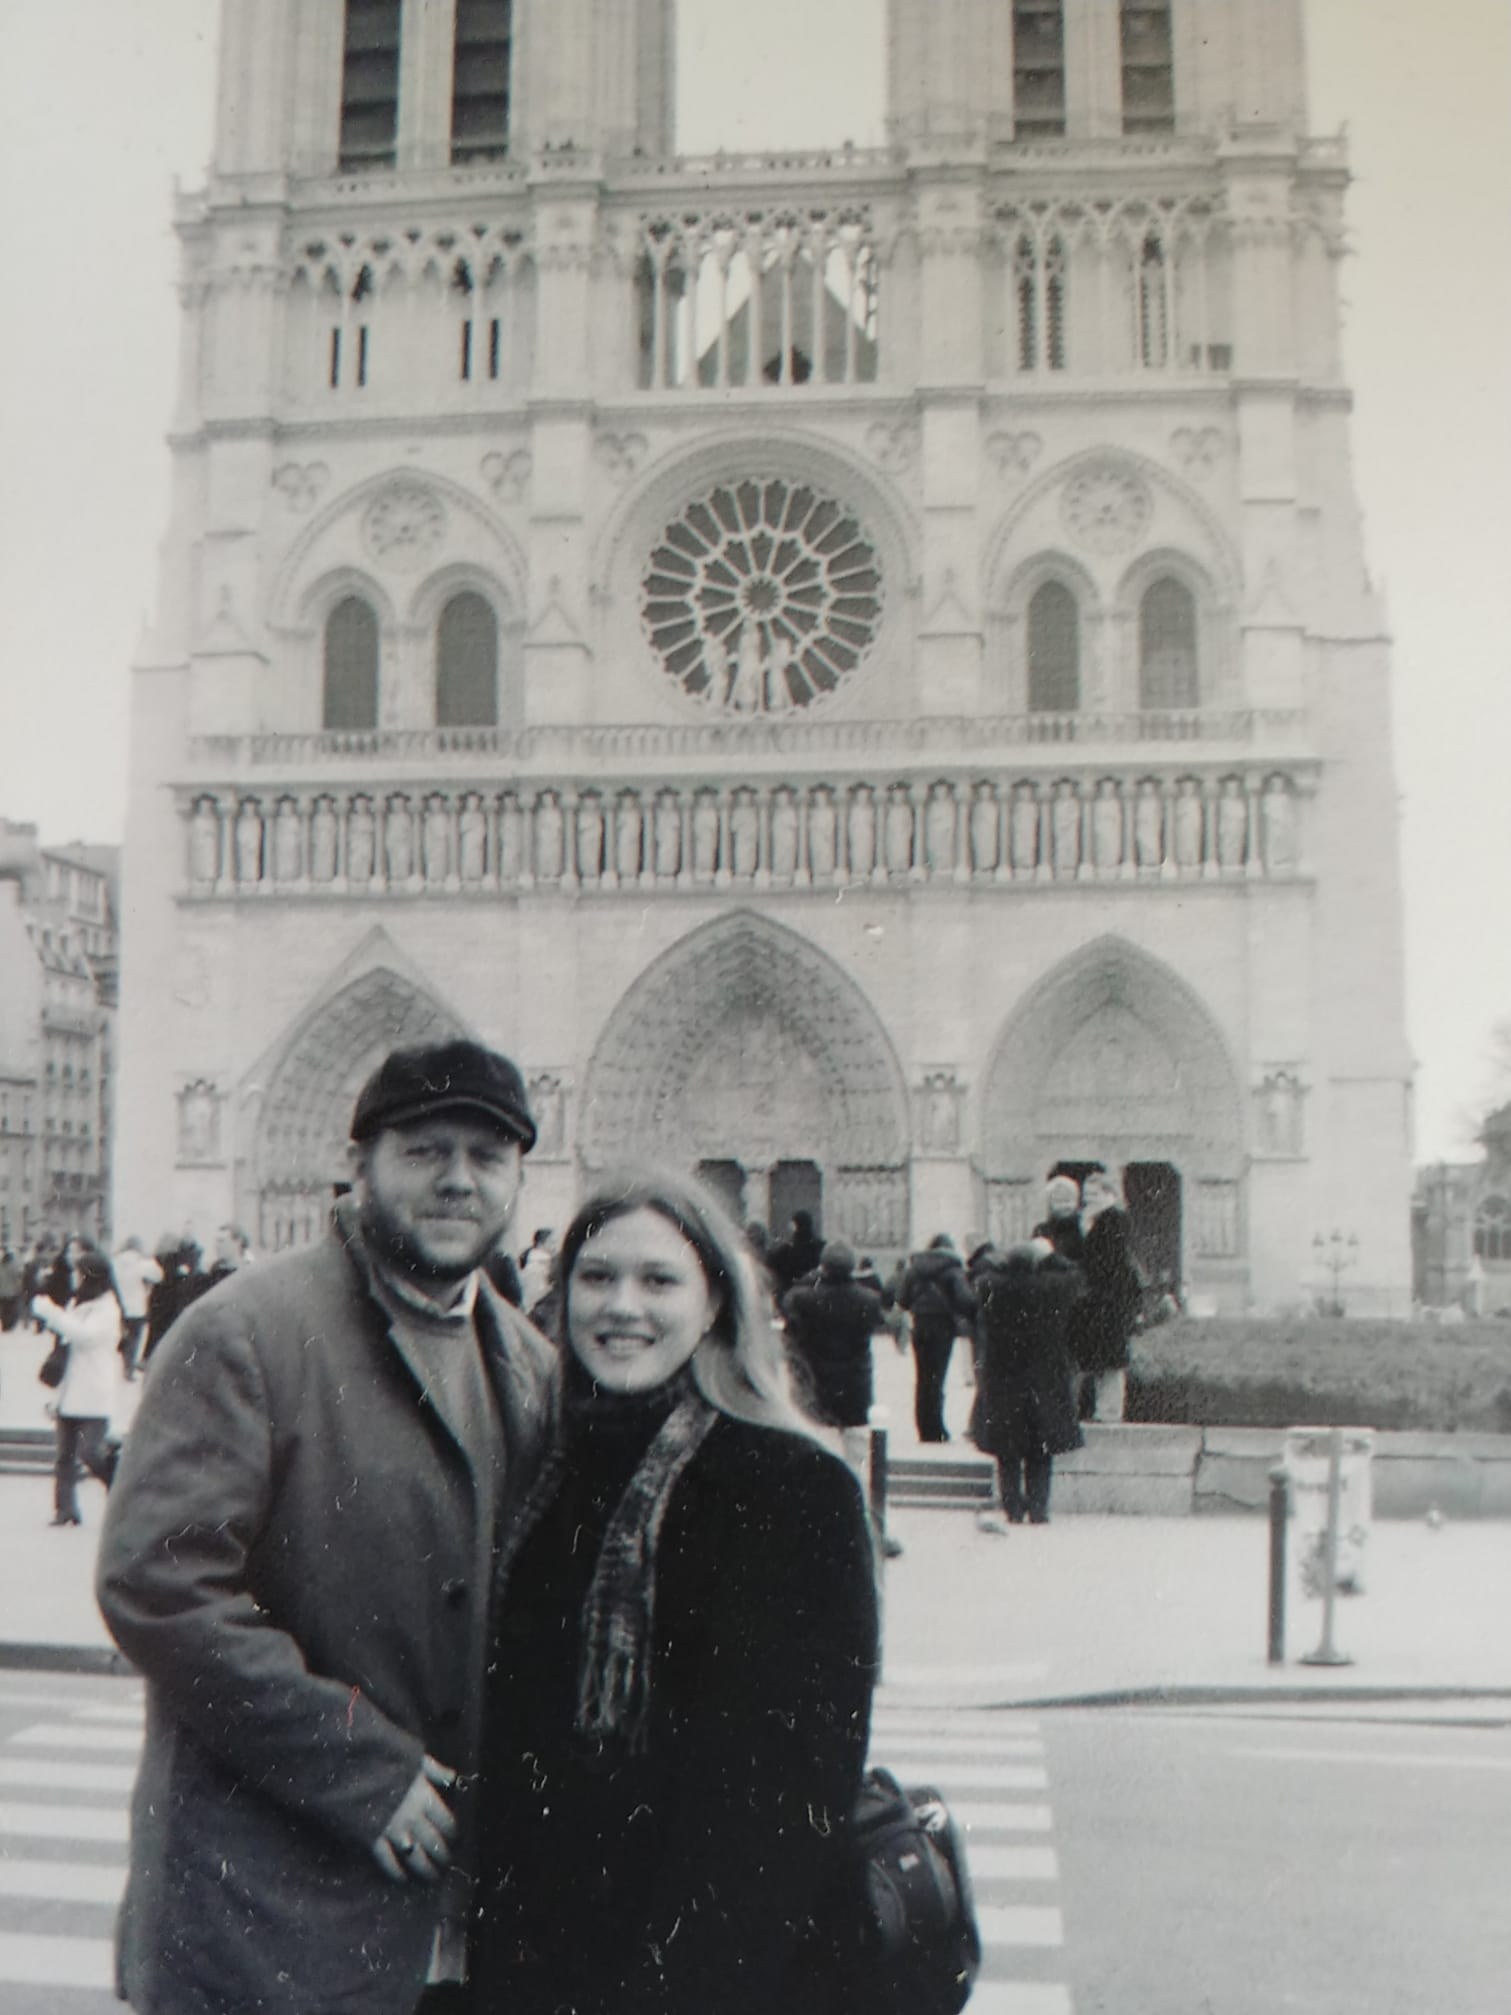 Locals shared their memories and photos of the historic Notre Dame on April 15, 2019 after hearing the gothic Parisian cathedral suffered serious damage after a fire. (Image - Jennifer Diamanti)